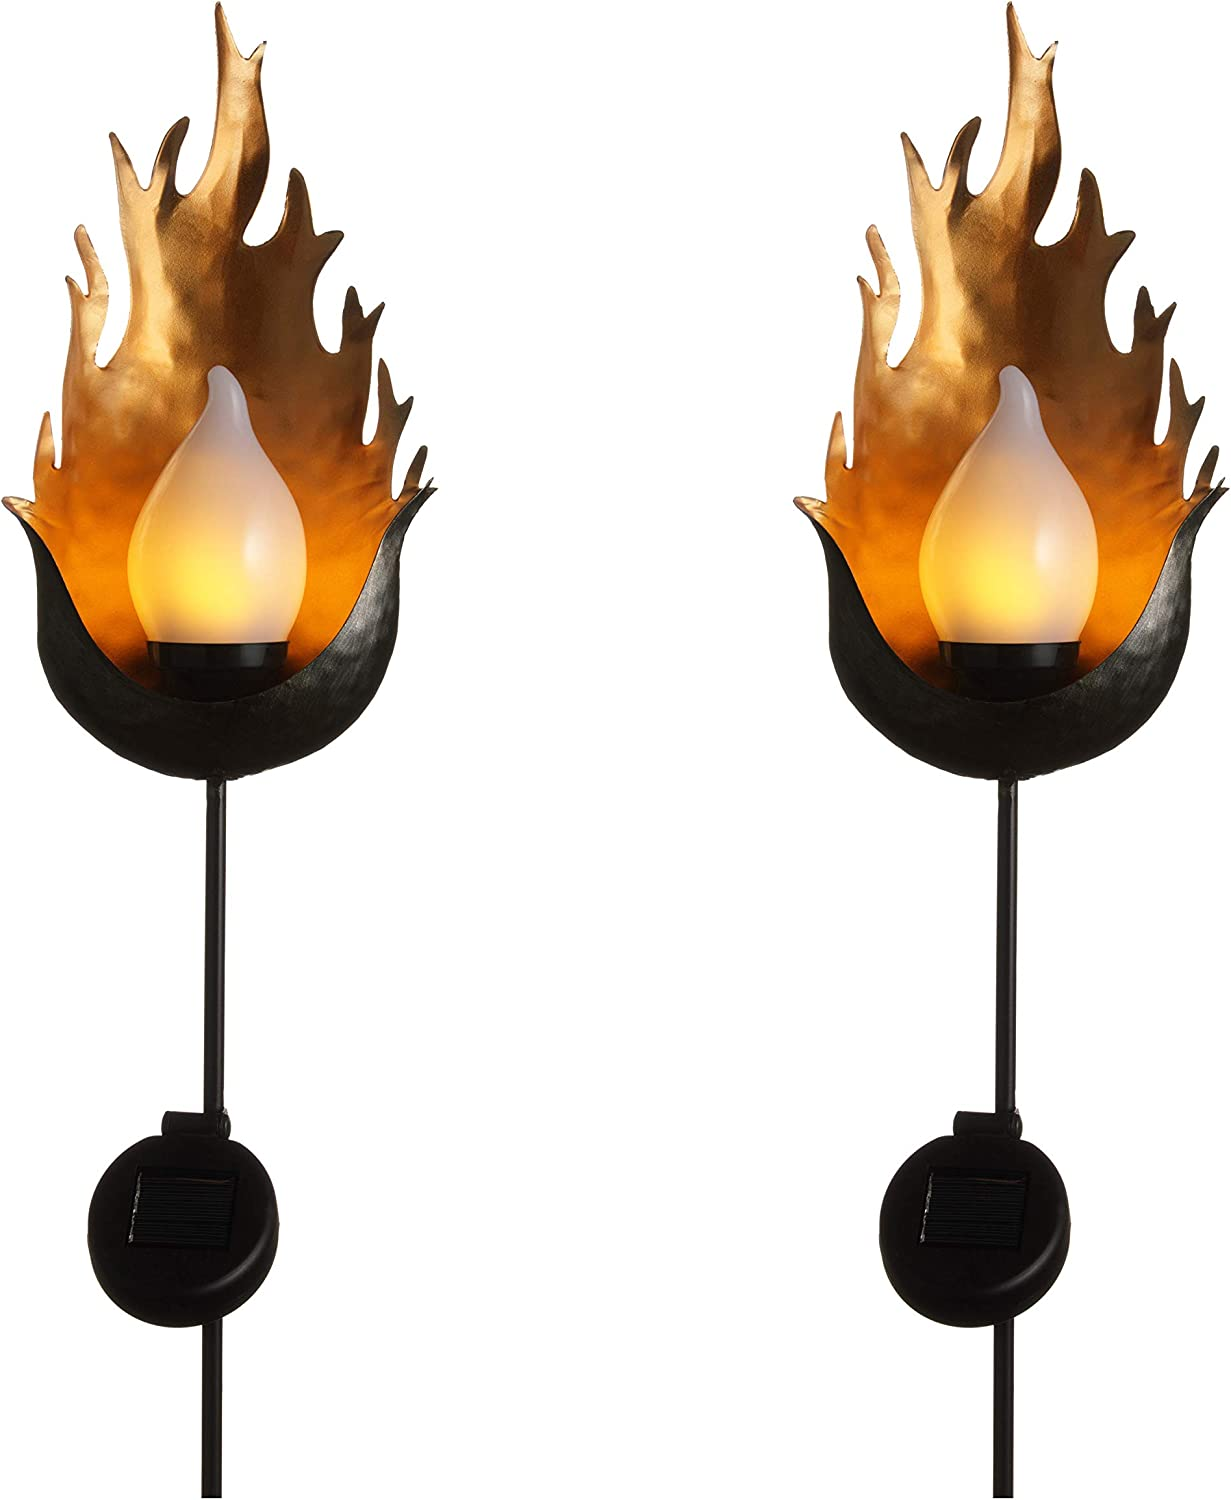 "70 Inch Metal Solar Flickering Flame Torches - Fuego - 2 Torch Set - Dancing ""TruFlame"" Bulb - 8 Hours Per Charge. Waterproof, Dust to Dawn Auto On/Off Beautify Landscaping Day and Night"